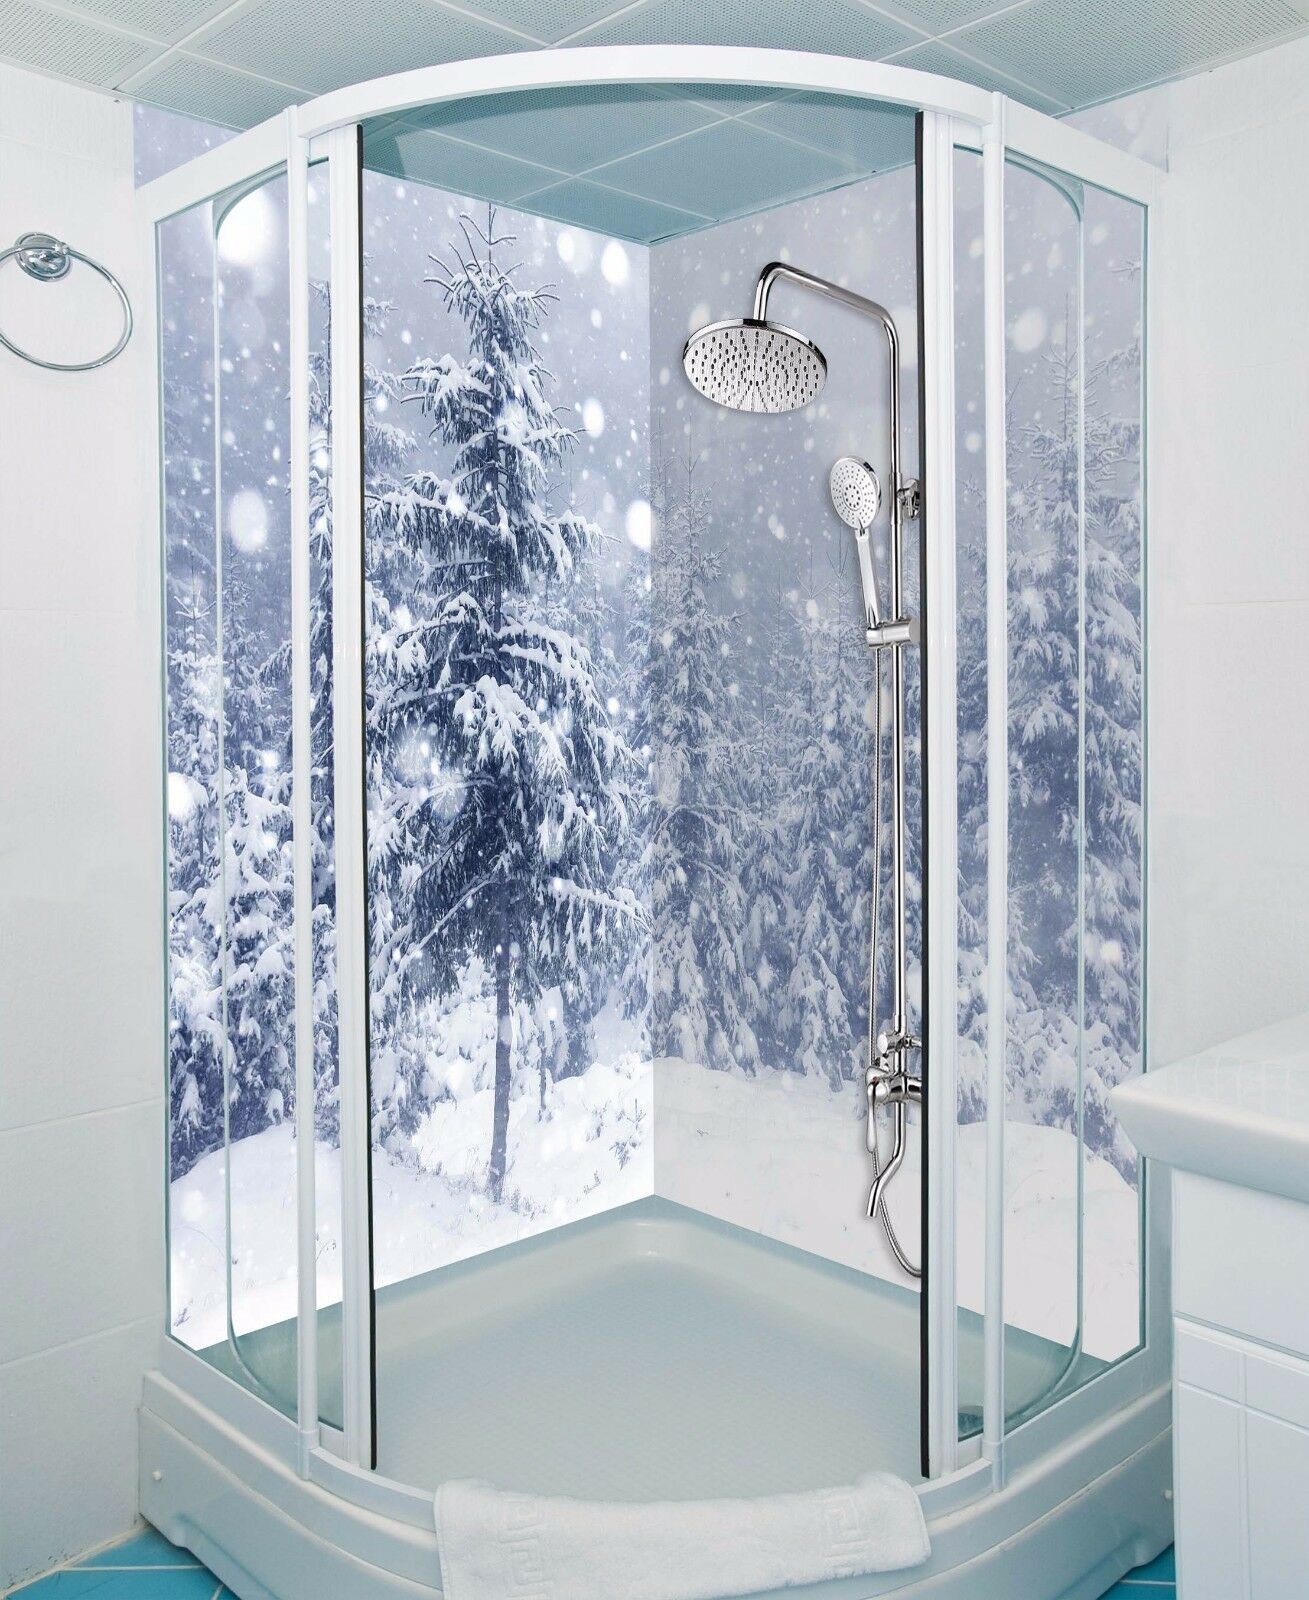 3D Pine Snowing Weiß WallPaper Bathroom Print Decal Wall Deco AJ WALLPAPER UK